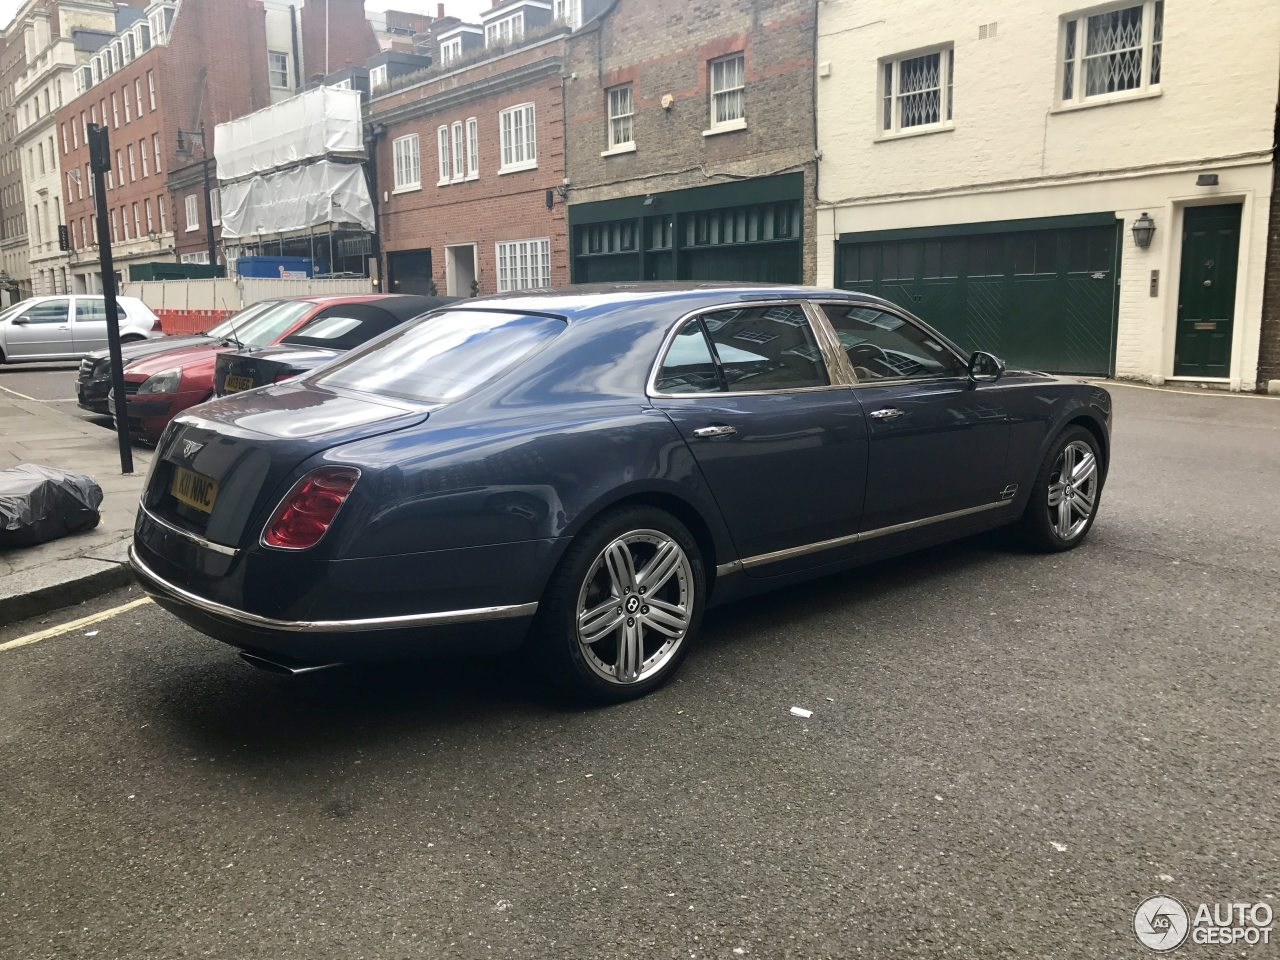 portsmouth doors car hampshire for continental sale in used gtc auto bentley